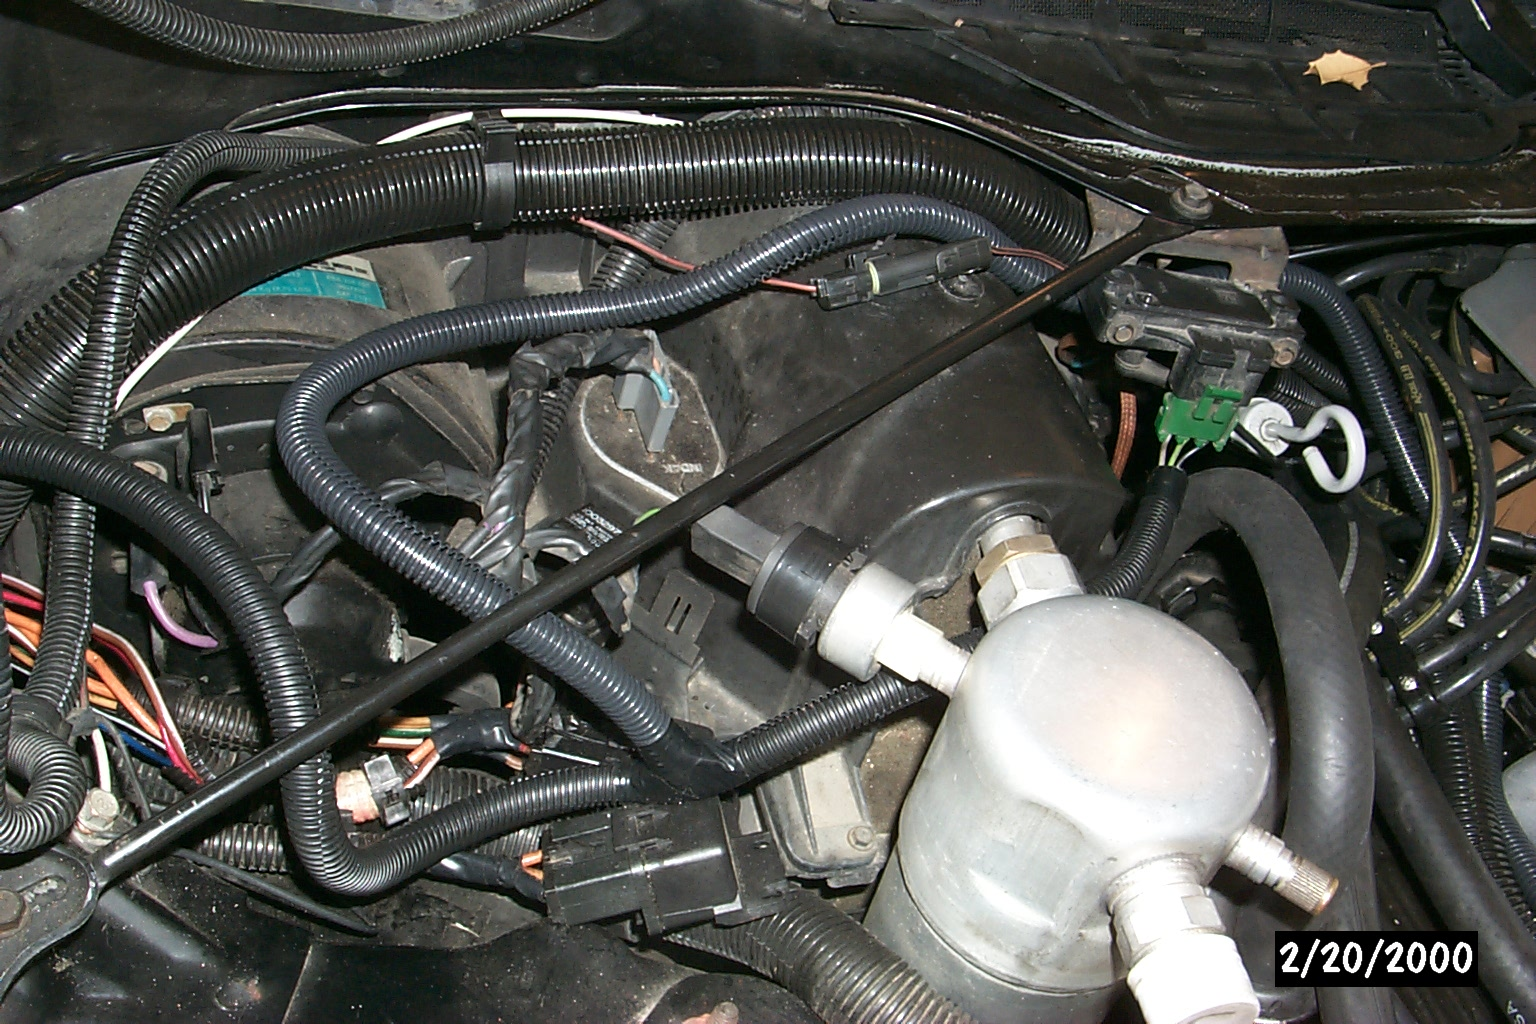 My 85 Z28 And Changing A 165 Ecm To 730 Wiring Car Engine Black Plastic Conduit Used For All Clean Look